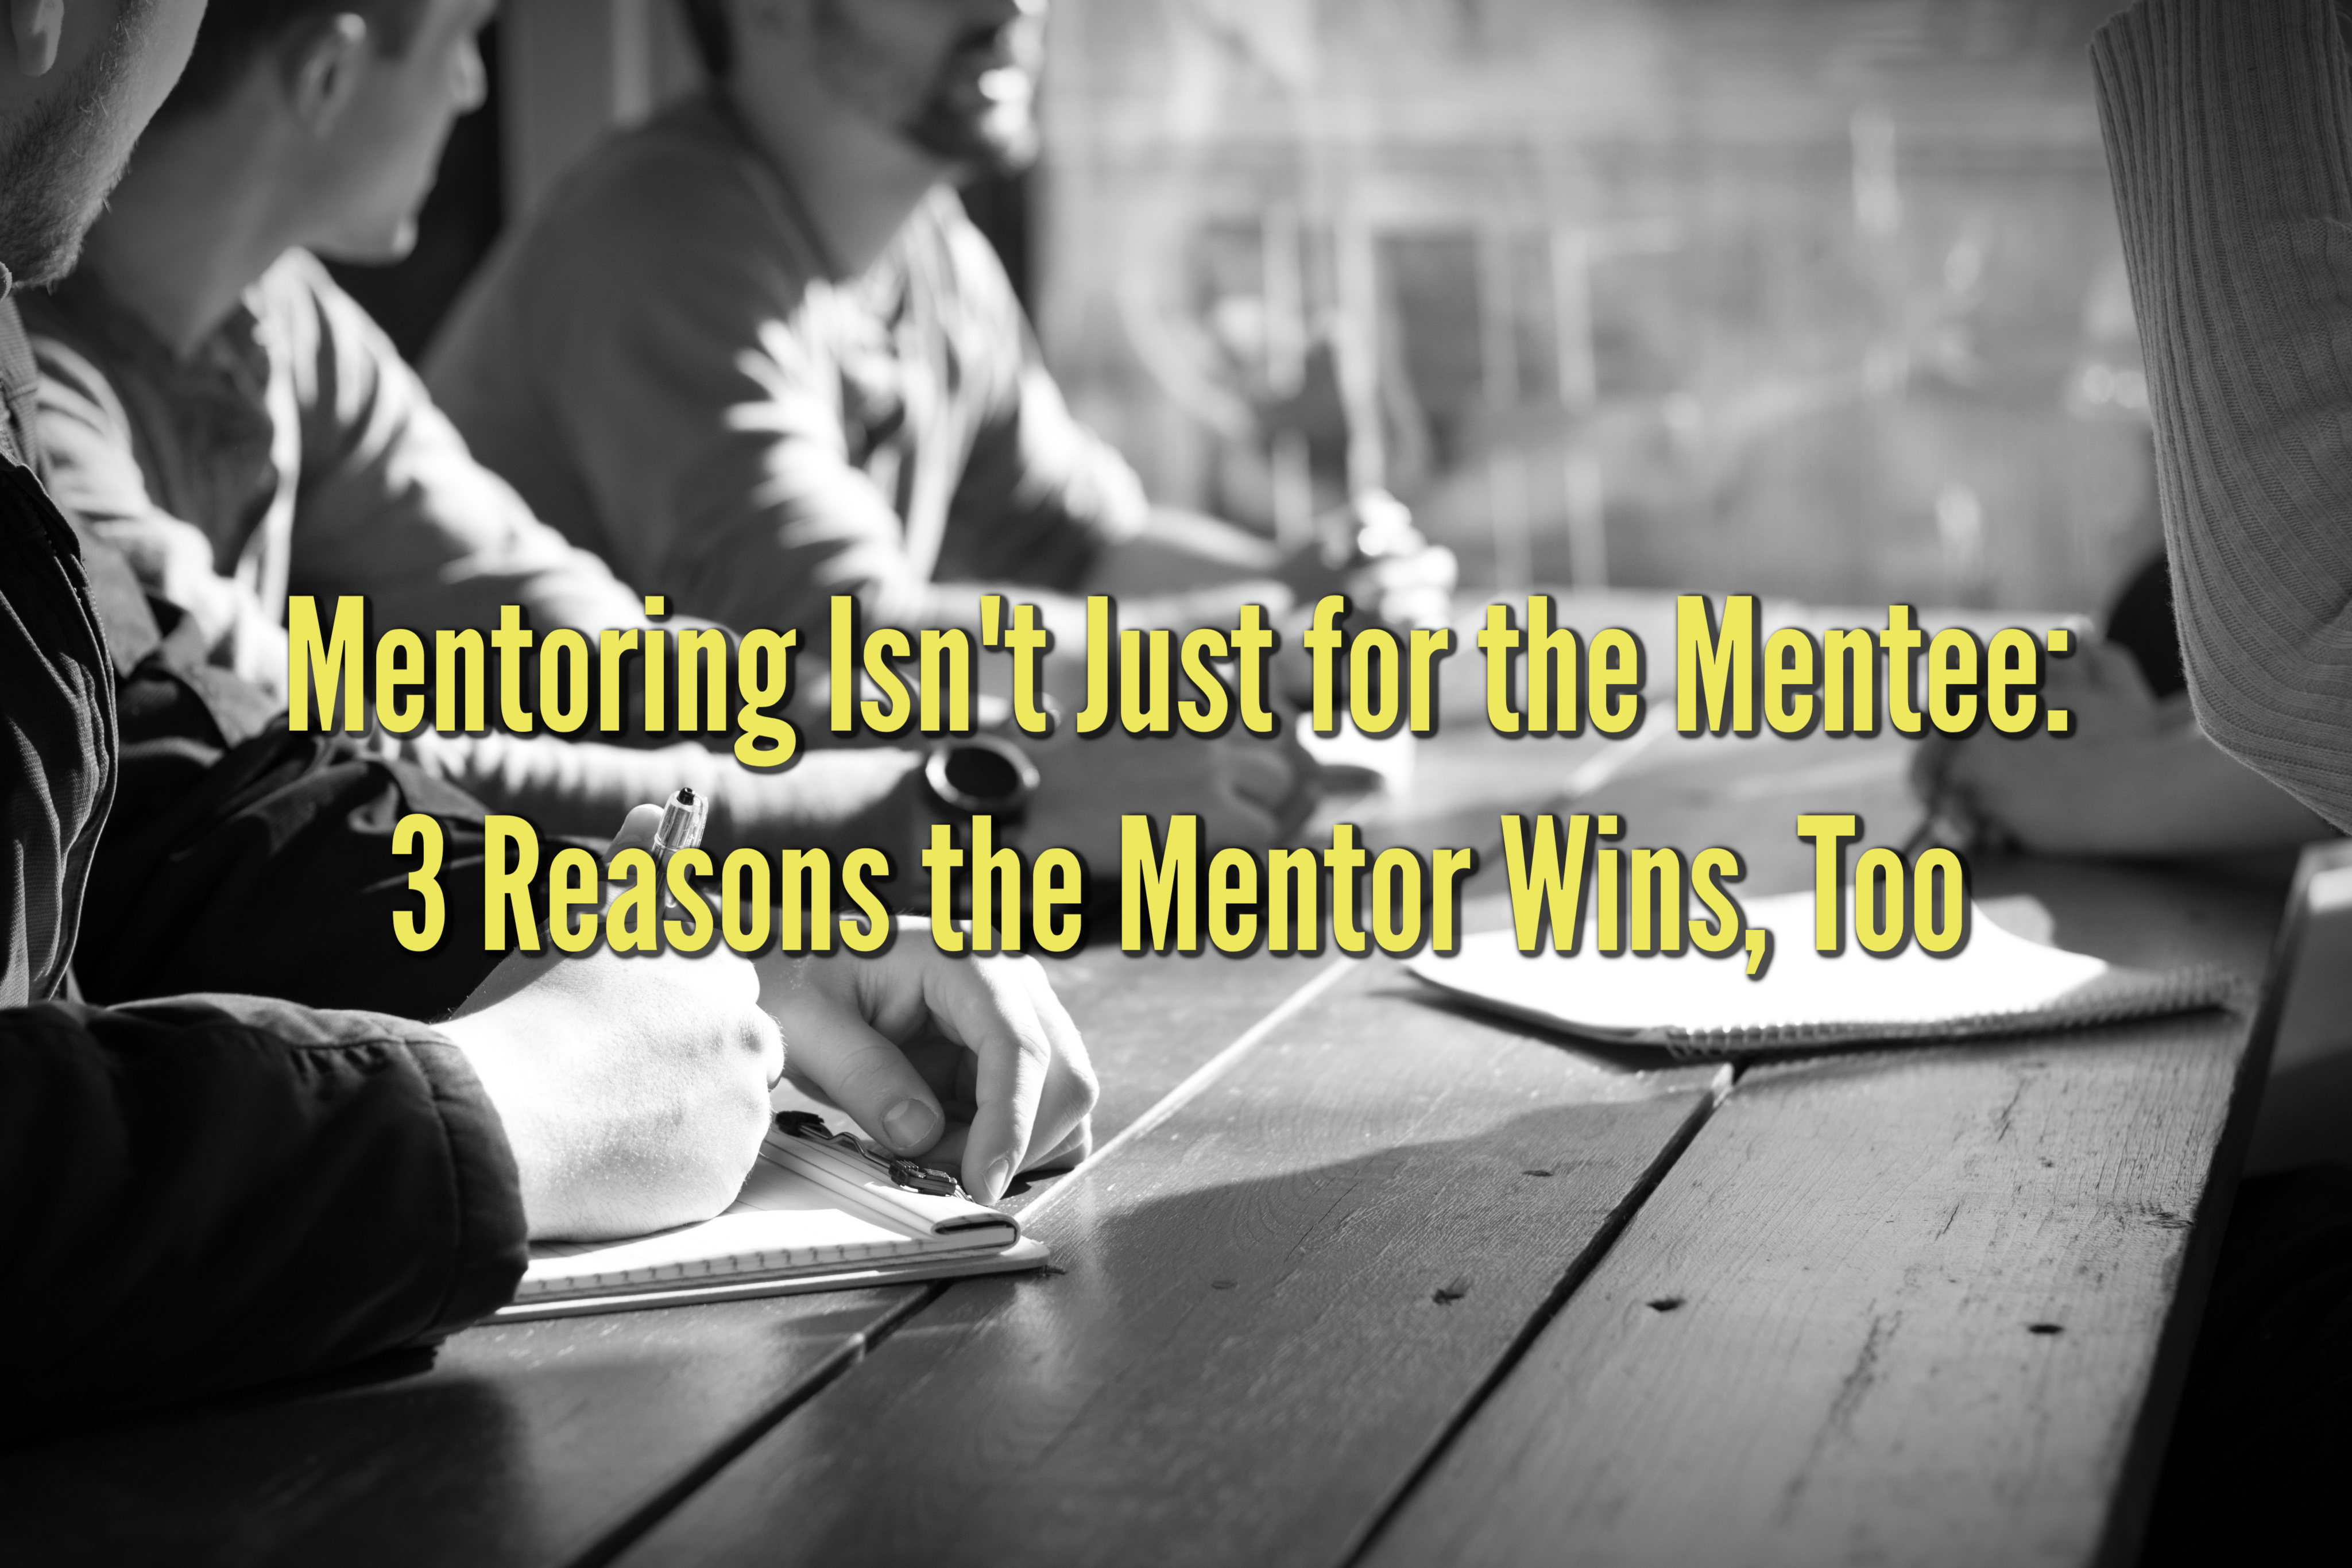 Mentoring Isn't Just for the Mentee: 3 Reasons the Mentor Wins, Too